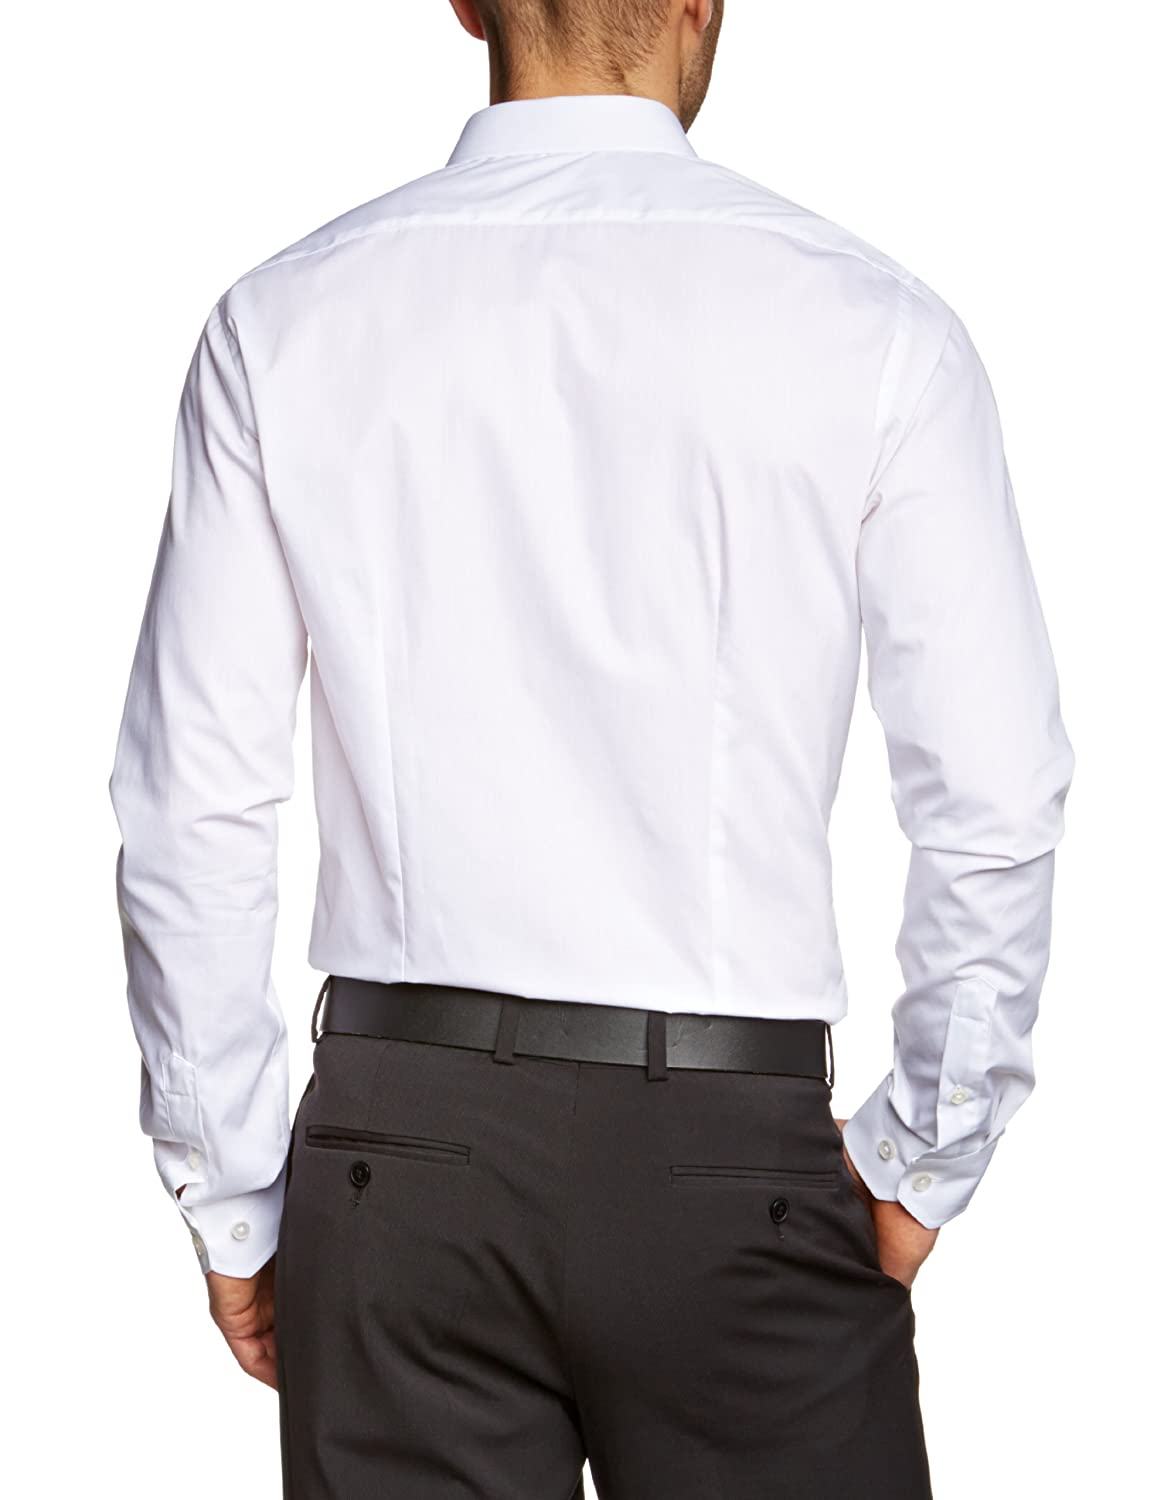 Fr Homme Fabricant Blanc 38 40 taille 1 Arrow Chemise w6qIpI